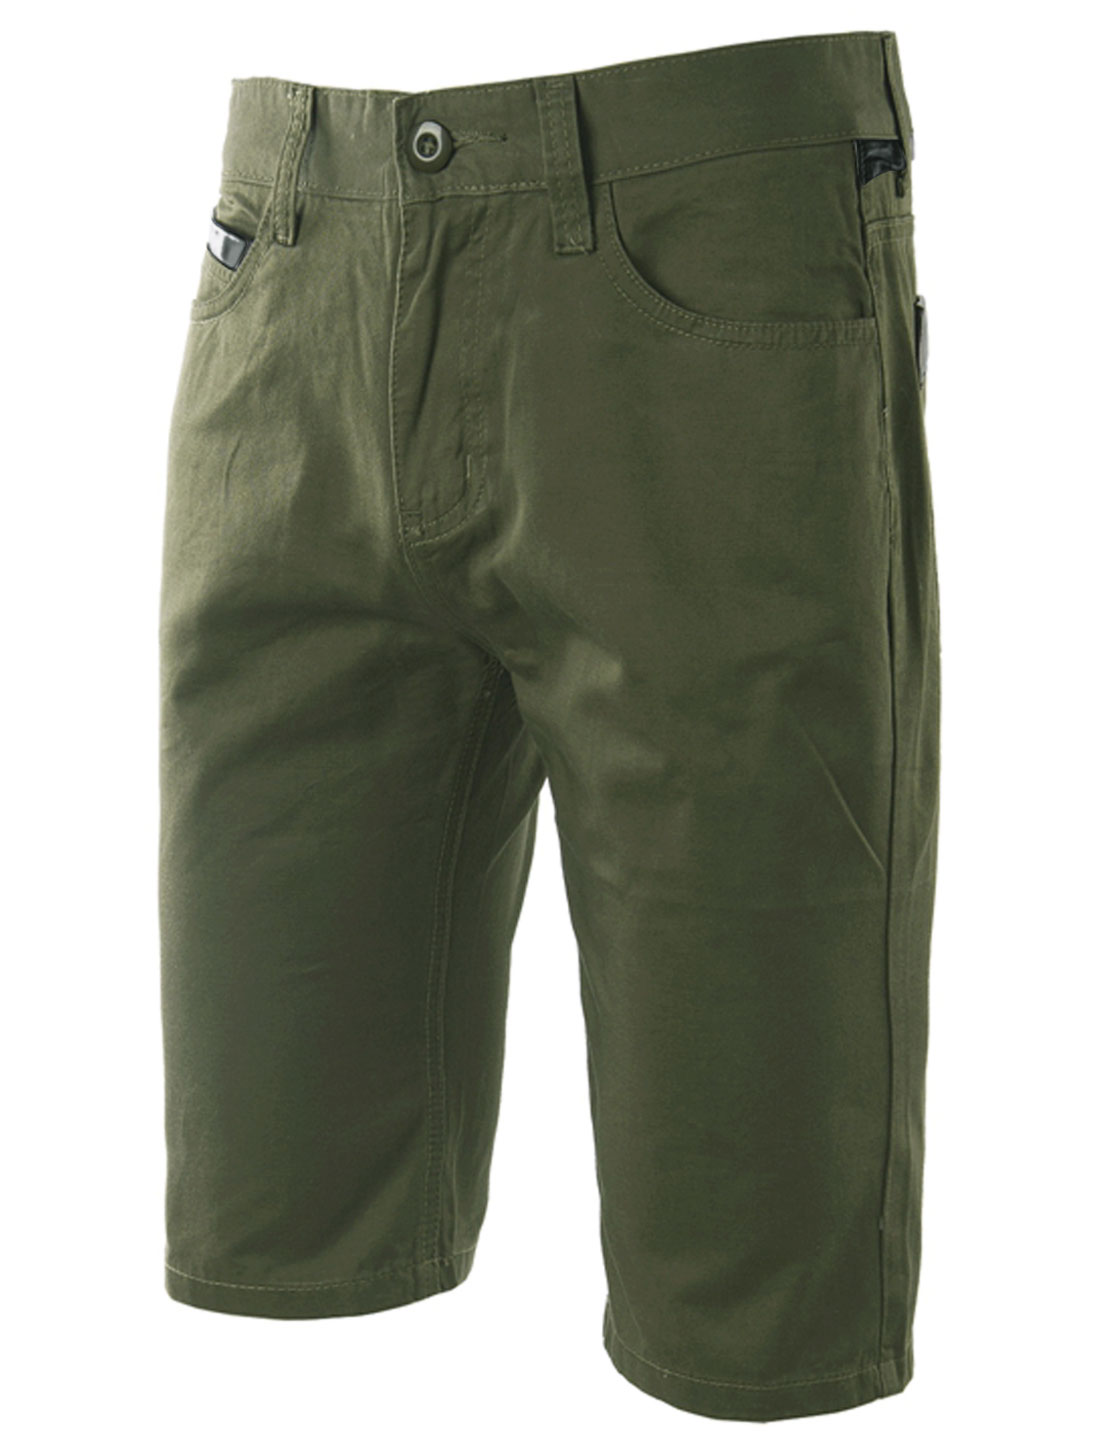 Man's Hip Pockets Single Button Closure Casual Chino Shorts Army Green W32